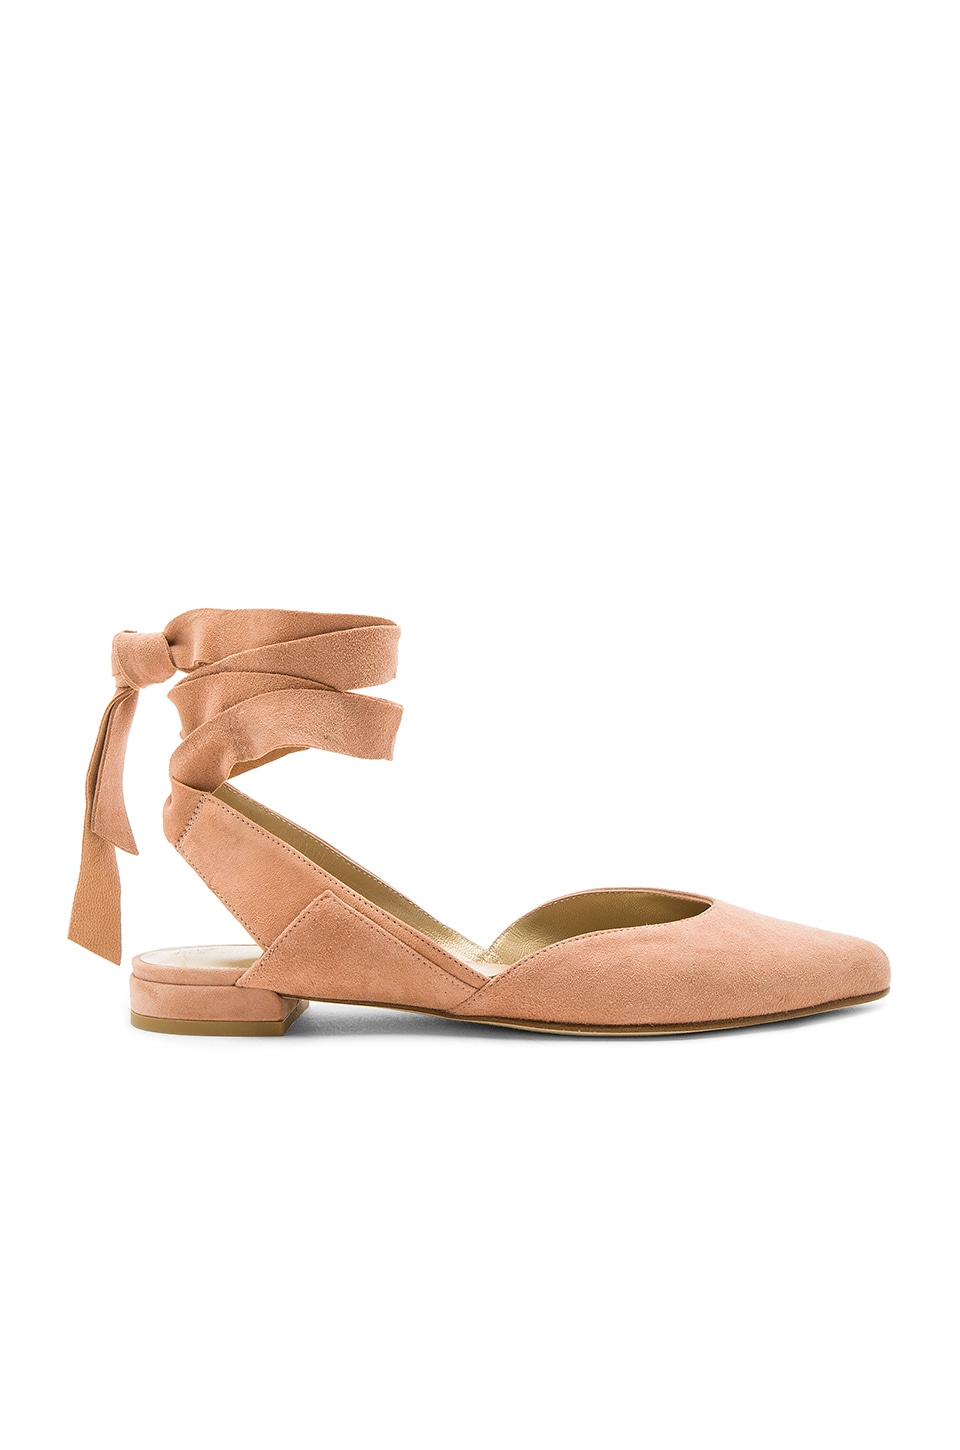 Stuart Weitzman Supersonic Flat in Naked Suede